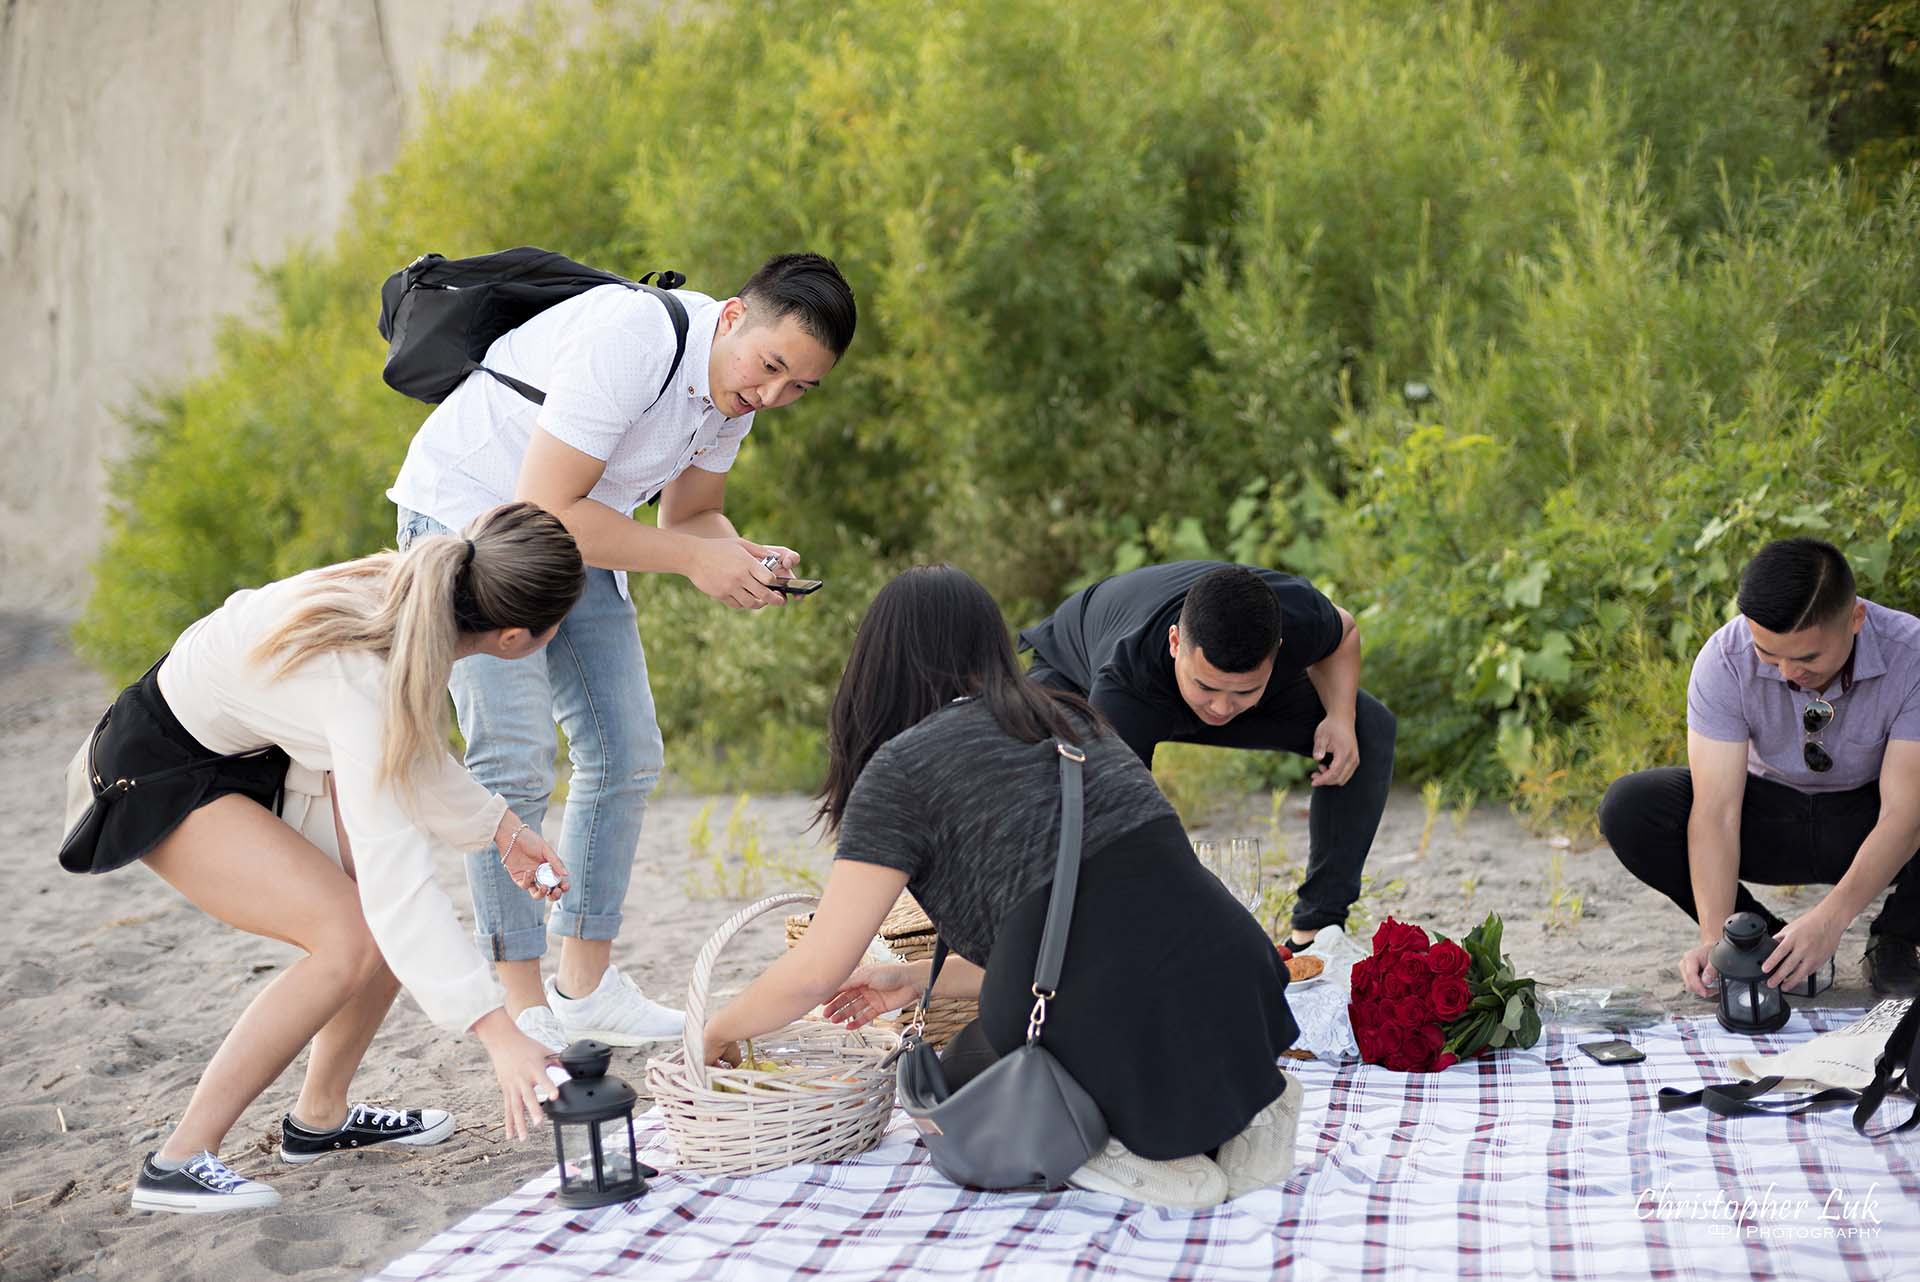 Christopher Luk Toronto Photographer Scarborough Bluffs Beach Park Sunset Surprise Wedding Marriage Engagement Proposal Candid Natural Photojournalistic Bride Groom Friends Helpers Setting Up Teamwork